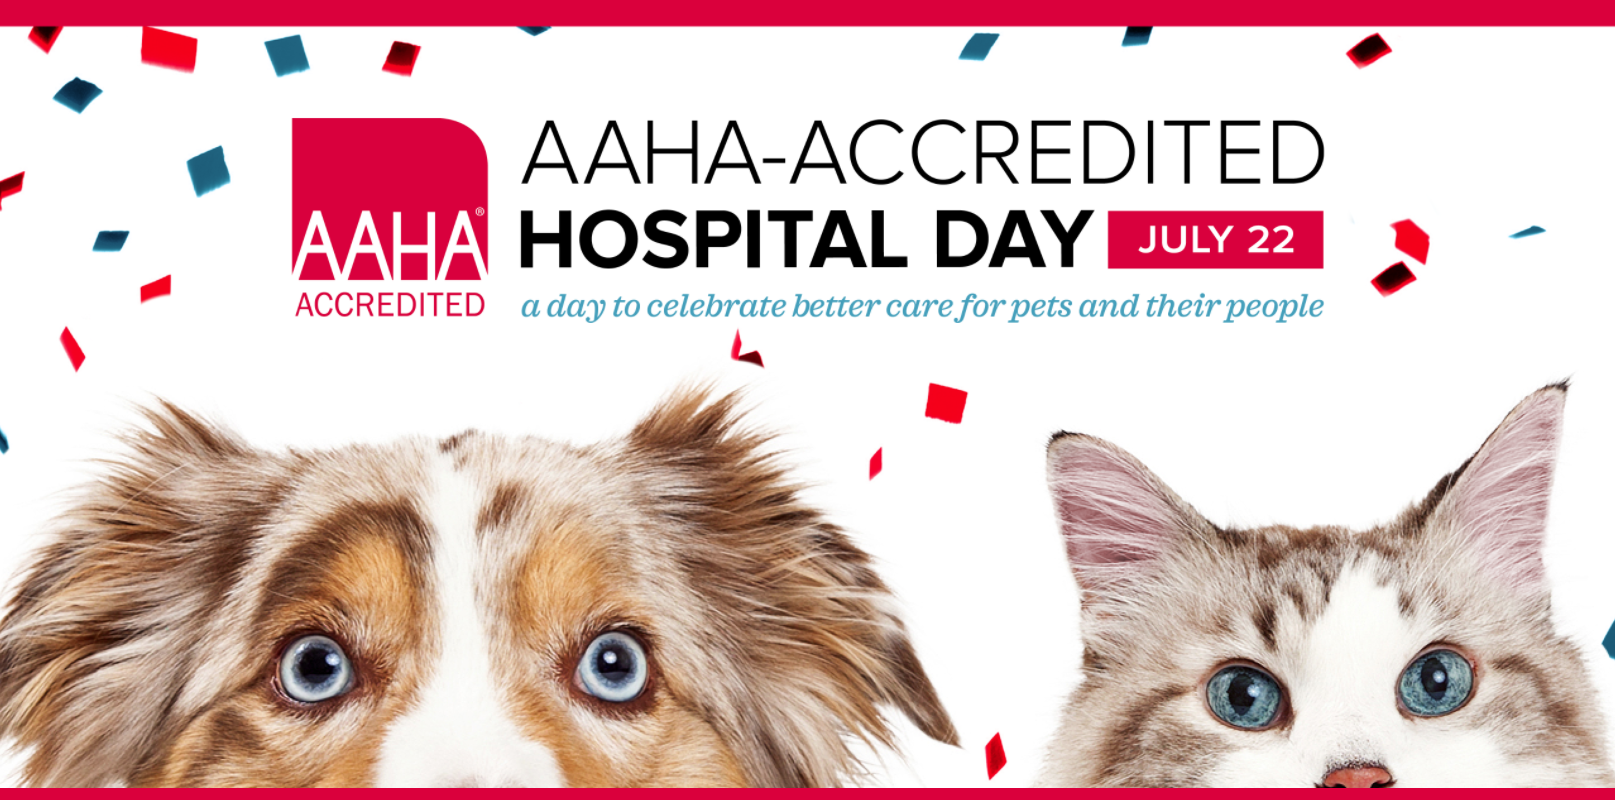 AAHA-Accredited Hospital Day: A Day to Celebrate Better Care for Pets and Their People